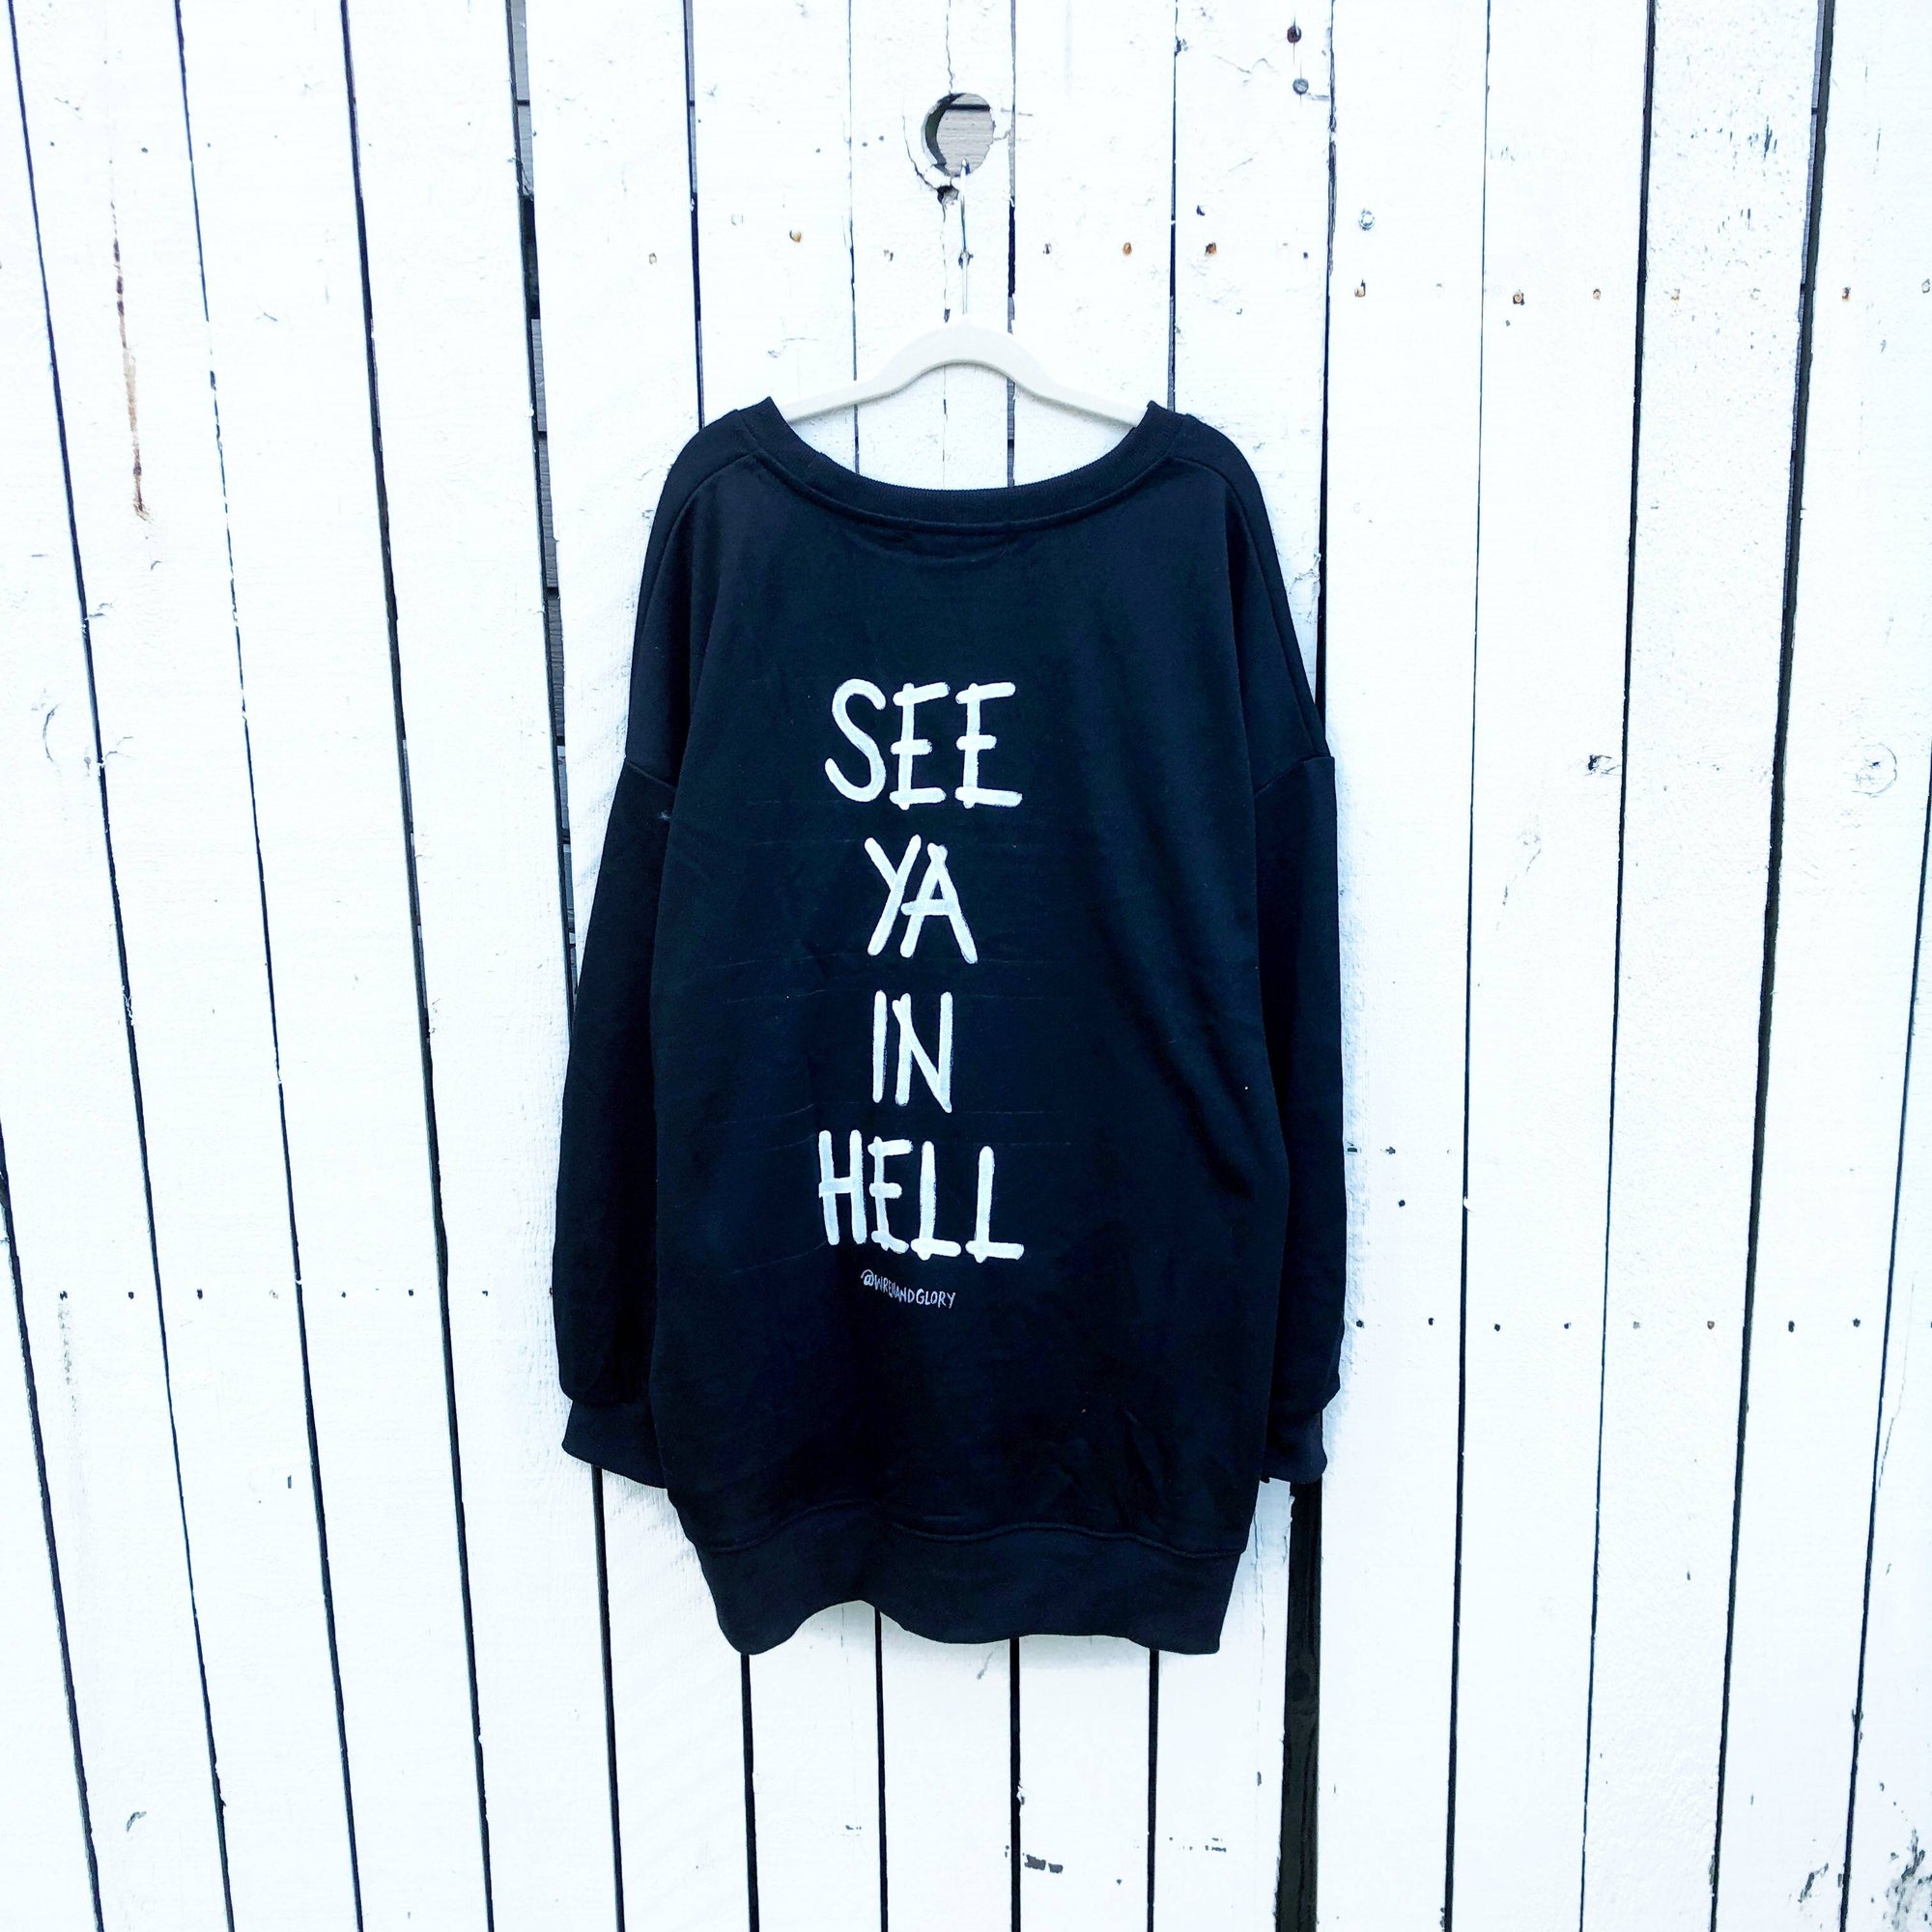 'IM A DEVIL' SWEATSHIRT